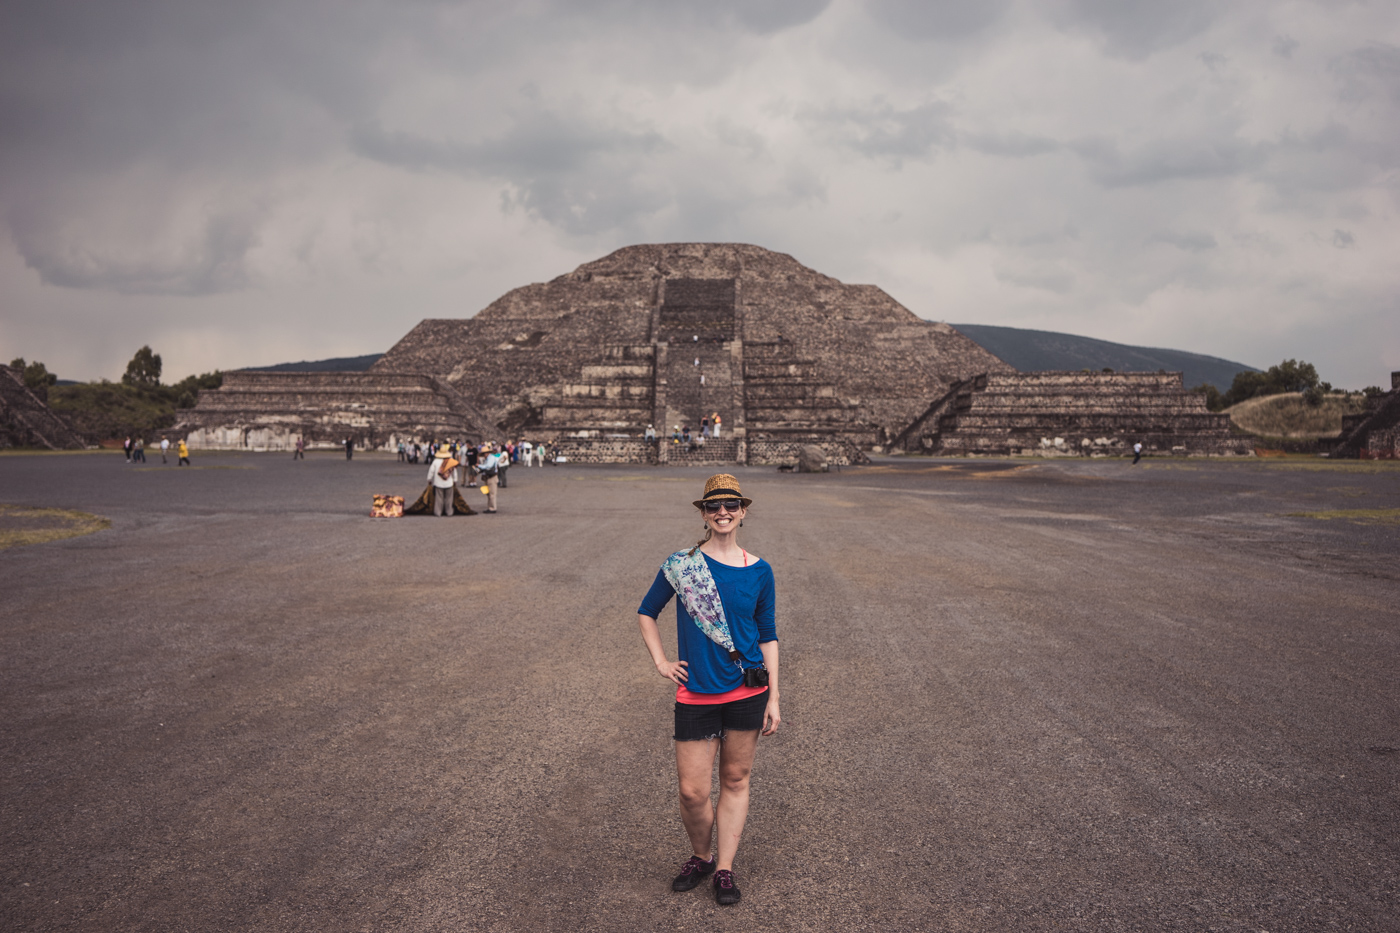 Avenue of the Dead at Teotihuacán, view of Pyramid of the Moon